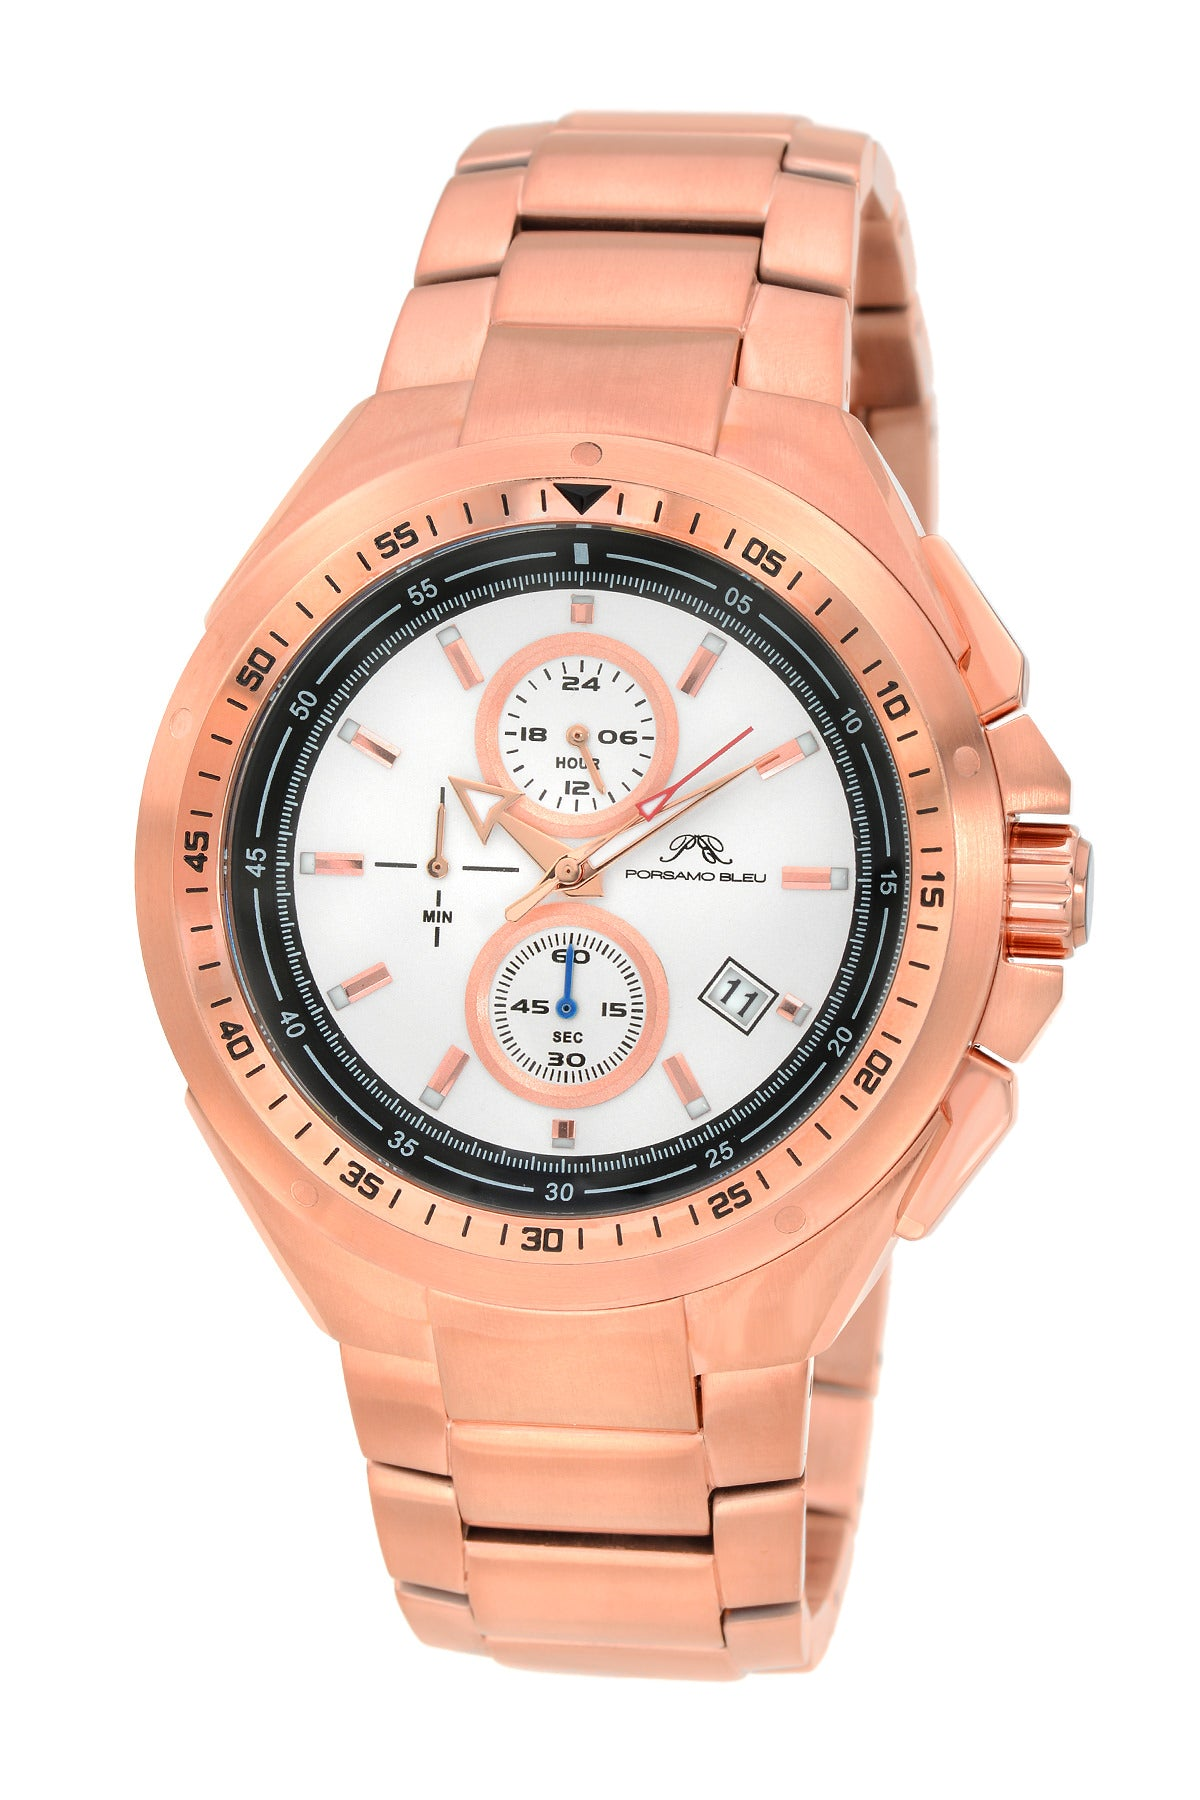 Porsamo Bleu Damien luxury chronograph men's stainless steel watch, rose 311CDAS